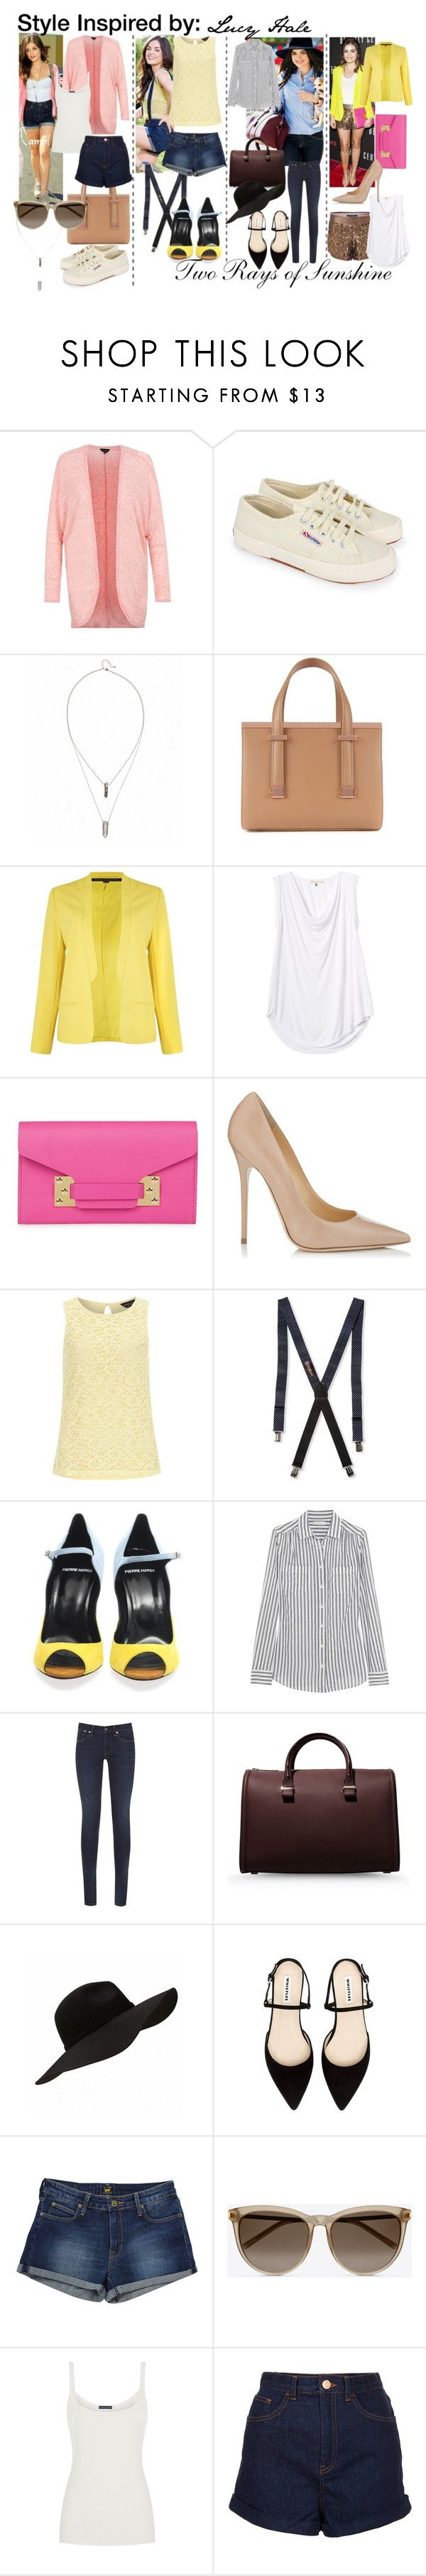 """""""Style Inspired by: Lucy Hale"""" by tworaysofsunshine ❤ liked on Polyvore featuring moda, French Connection, Superga, Ted Baker, Rebecca Taylor, Sophie Hulme, Jimmy Choo, Dorothy Perkins, Alexander Olch y Pierre Hardy"""